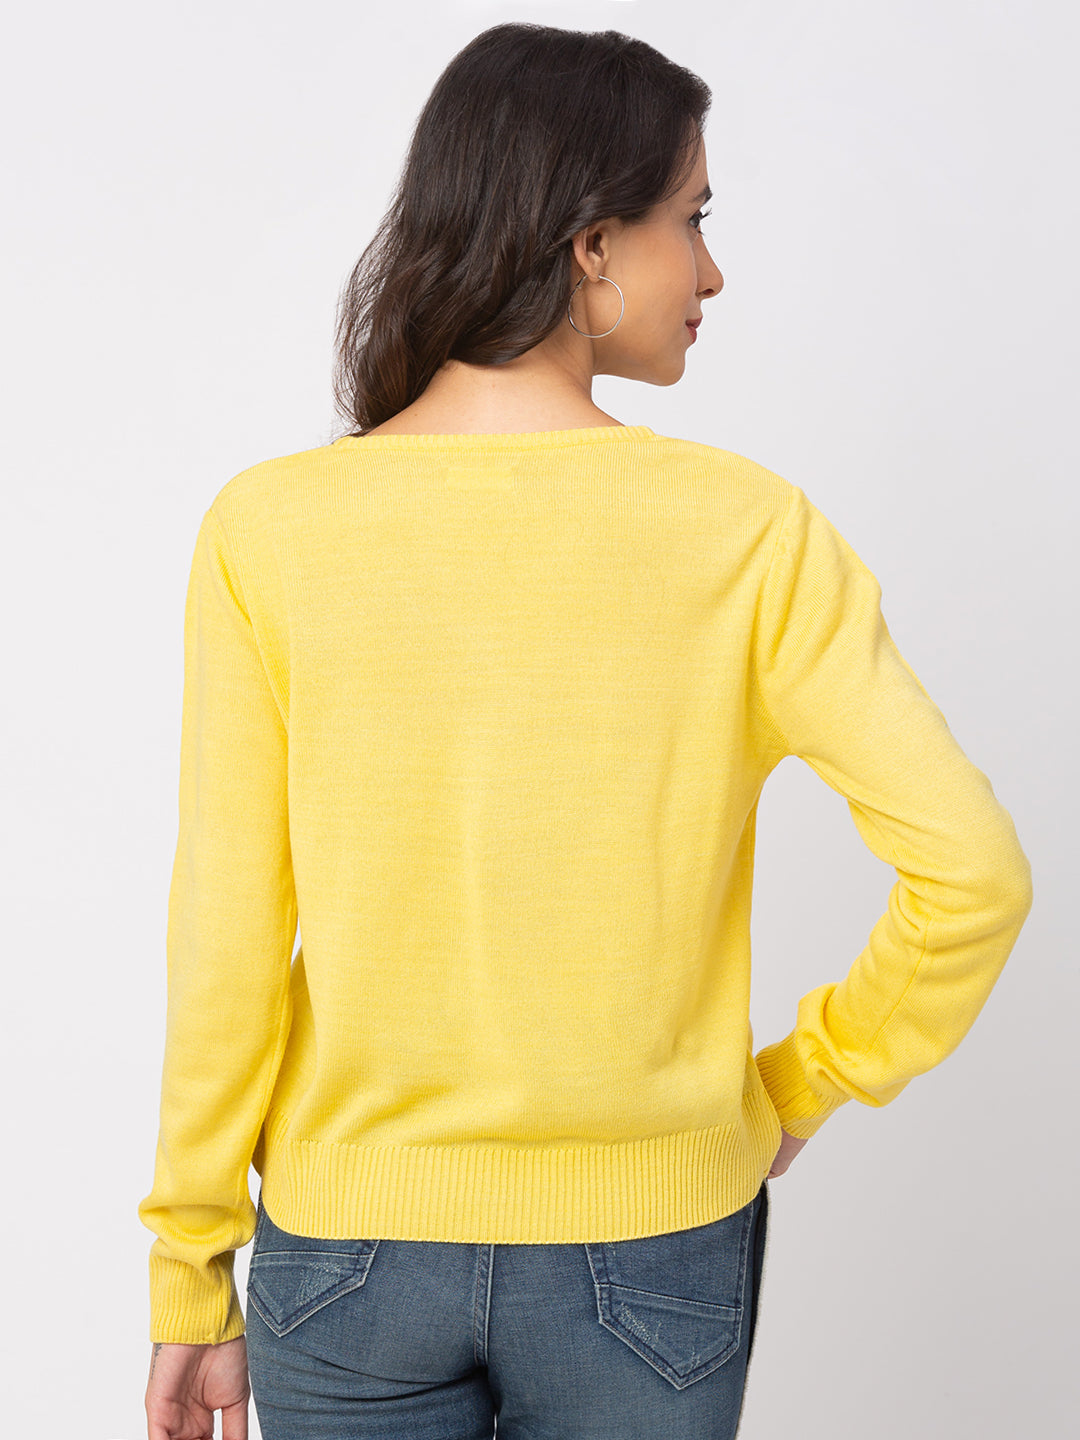 Globus Lemon Solid Sweater-3